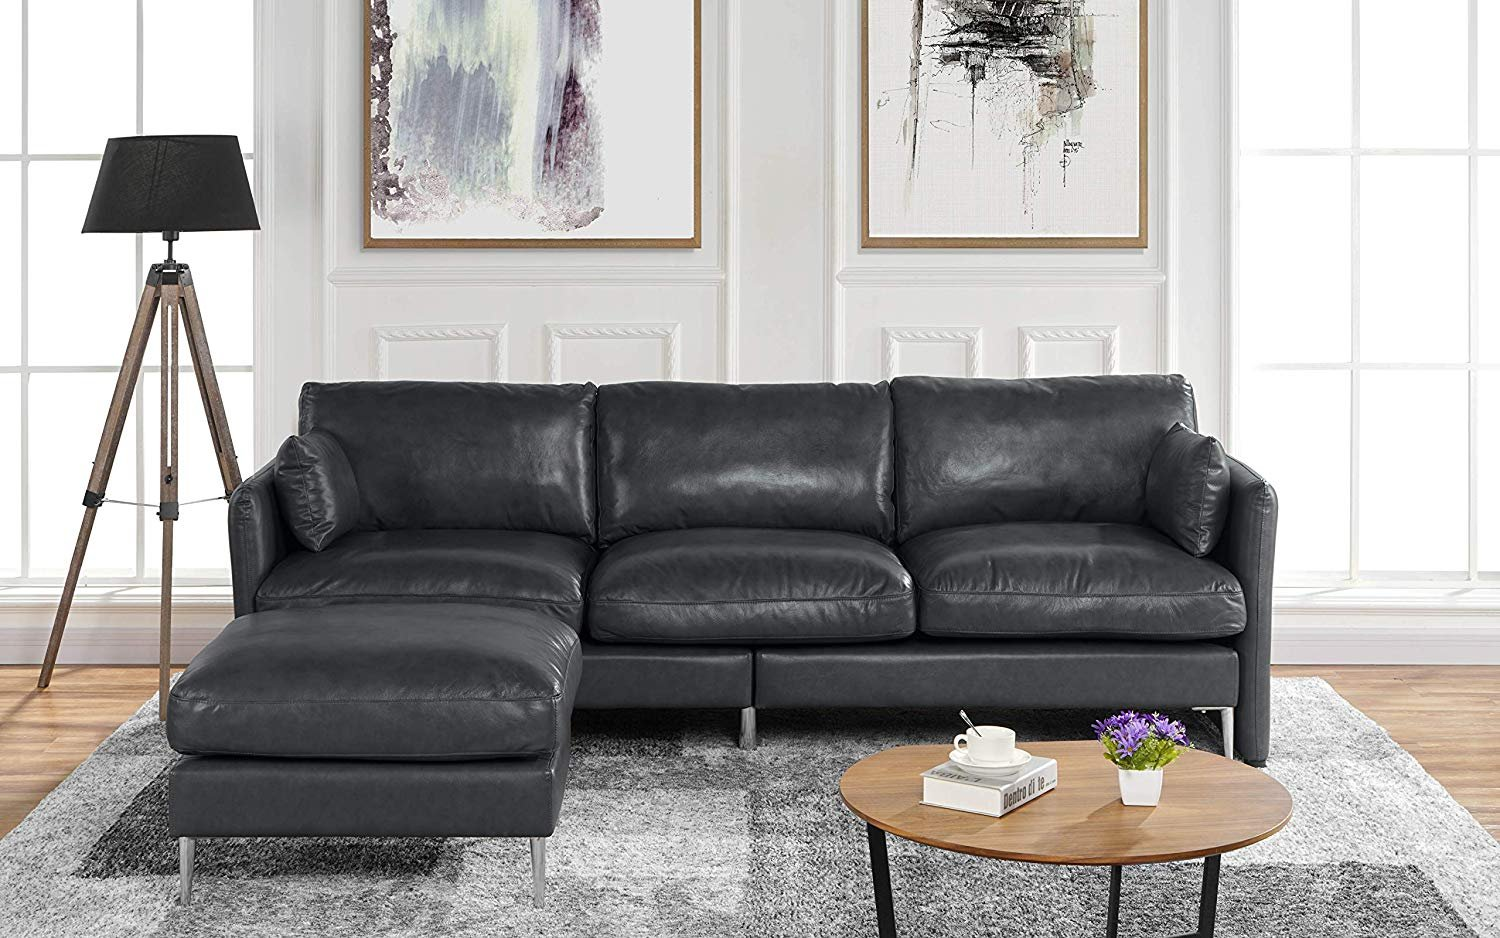 Details about Modern Leather Sectional Sofa, Reversible L Shape Couch,  93.7\